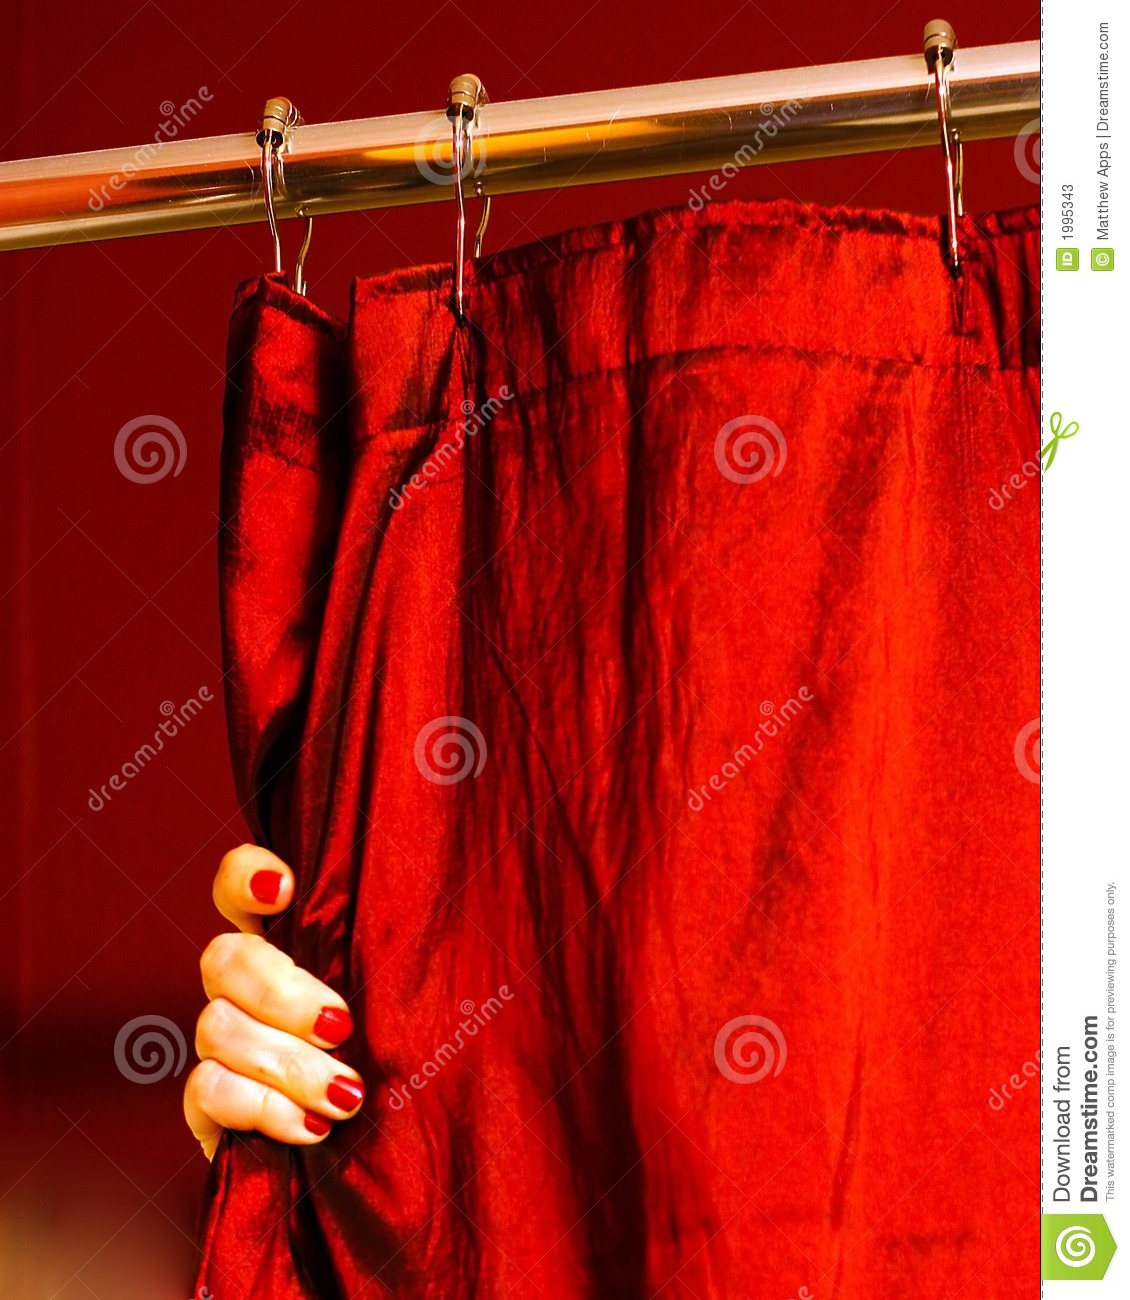 A Hand With Painted Finger Nails Holding A Red Shower